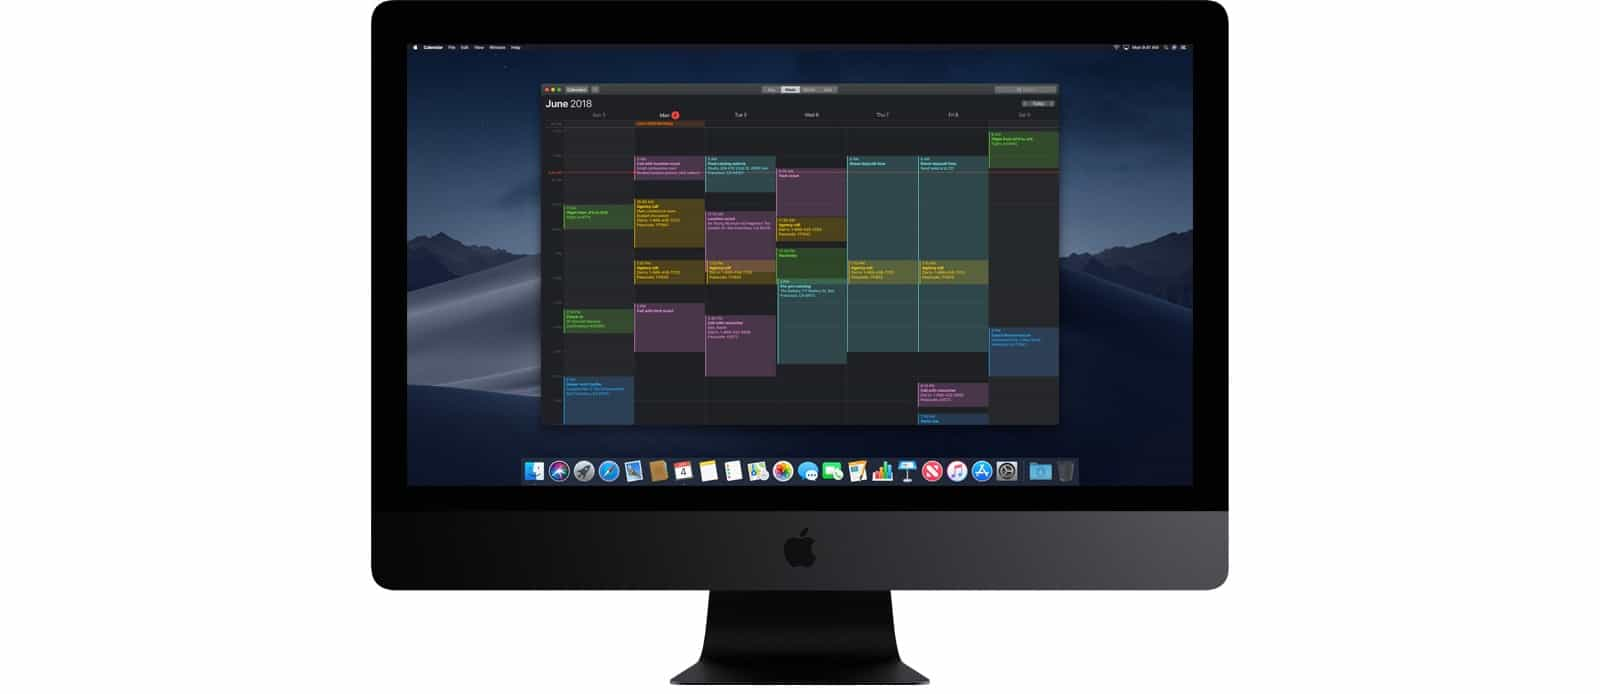 Is your Mac too old to run dark mode? Maybe!